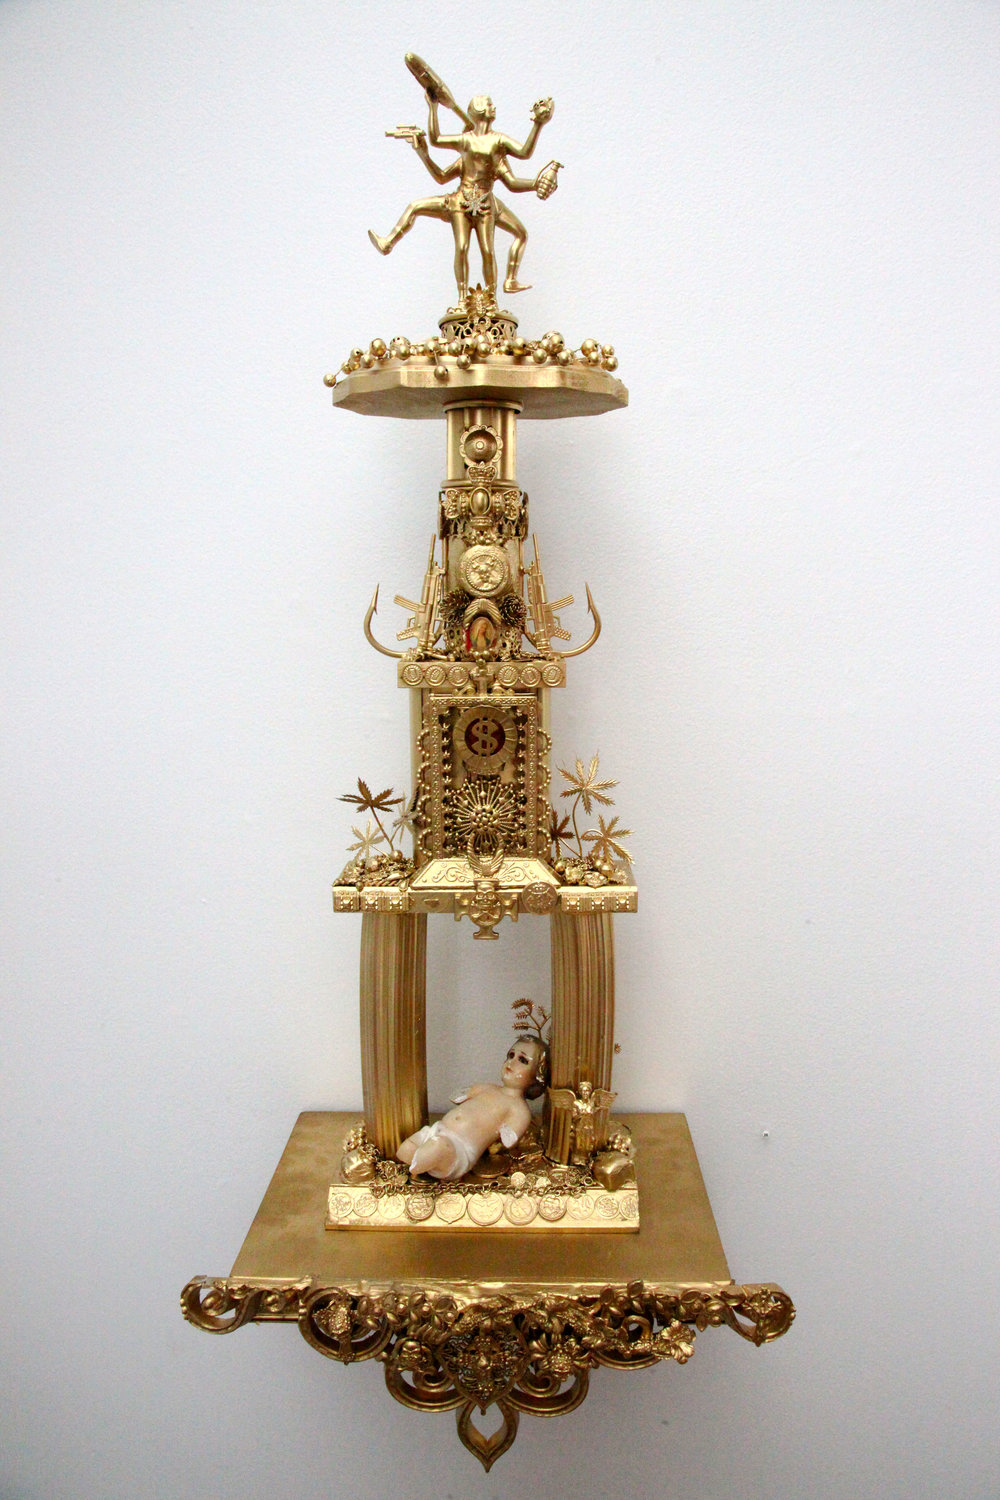 """Trophy #3 -- A Cryptic yet Precise Ritual of Confrontation Between the Designs of Good & Evil""   Mixed media, found objects  28 1/2"" x 7 1/2"" w/o shelf, 33 1/2"" x 14 1/2"" w/shelf  2016"